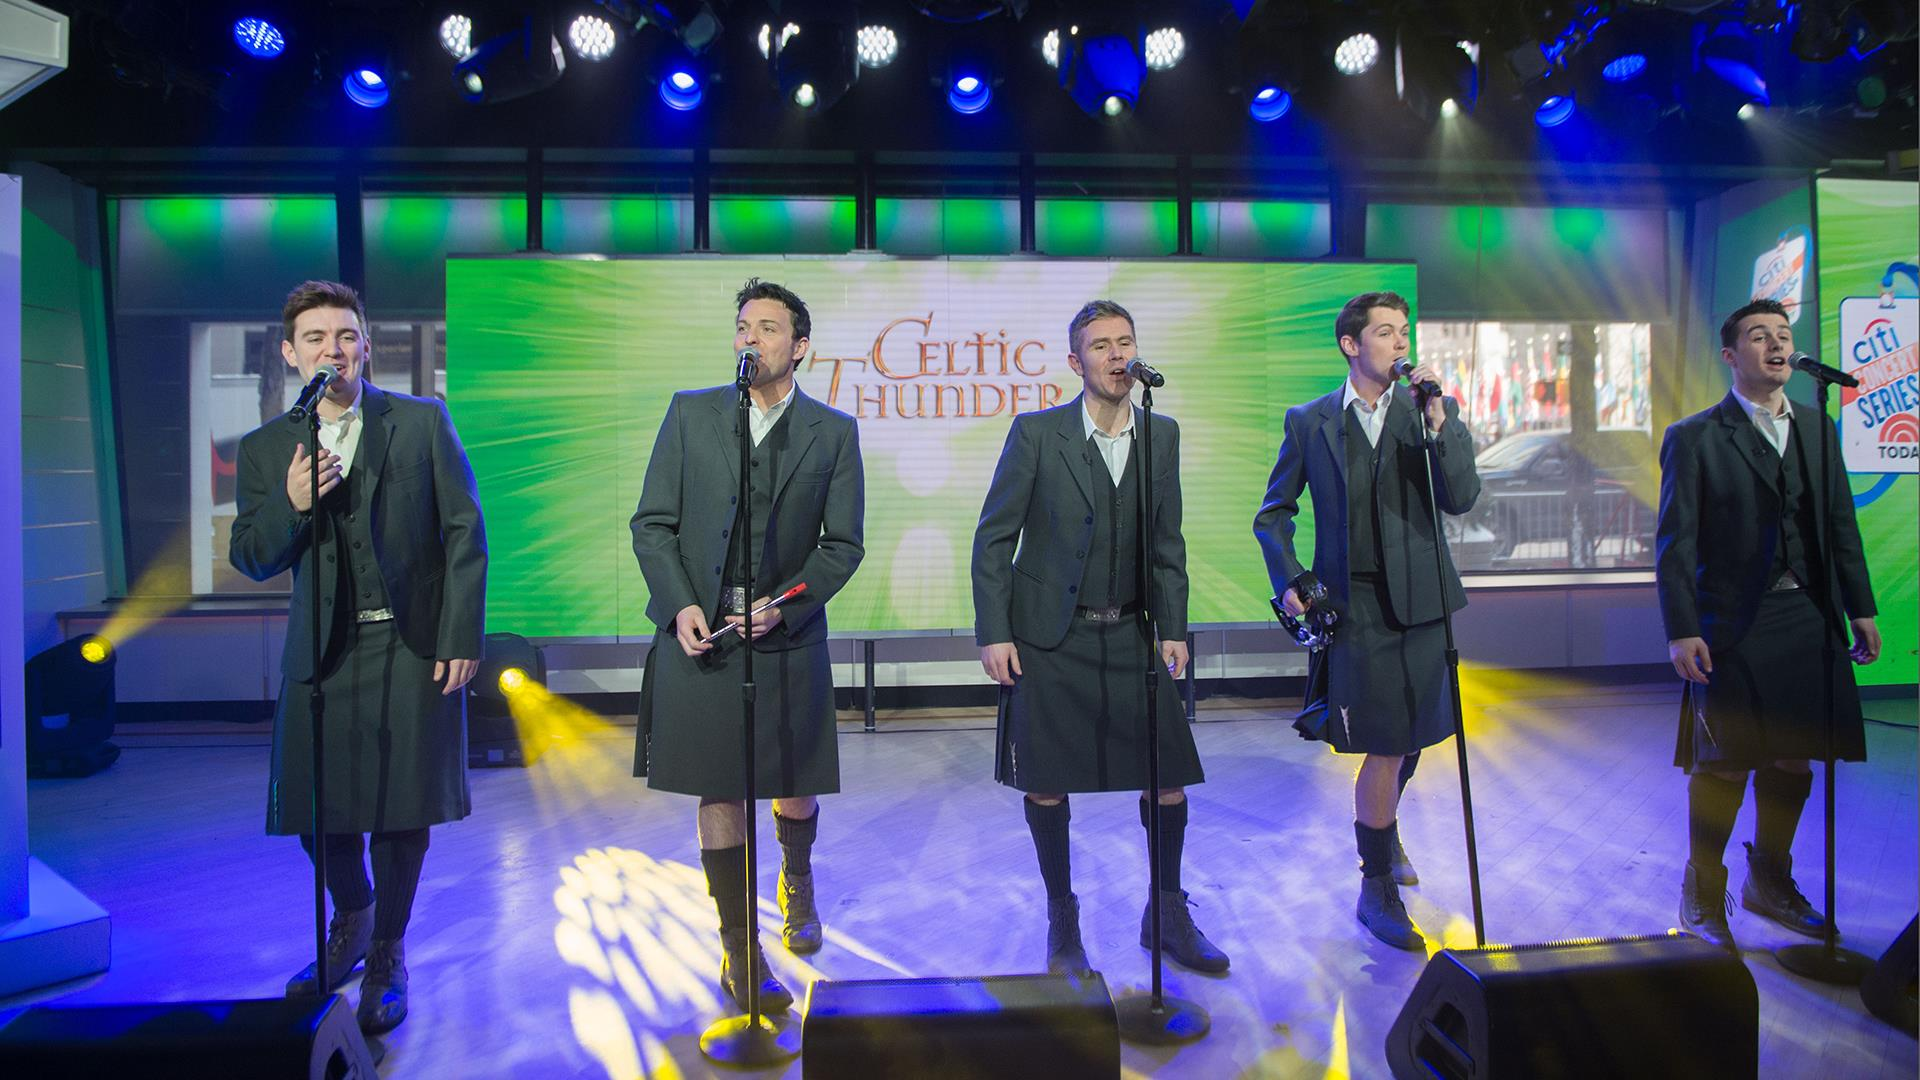 See celtic thunder perform the galway girl live on today m4hsunfo